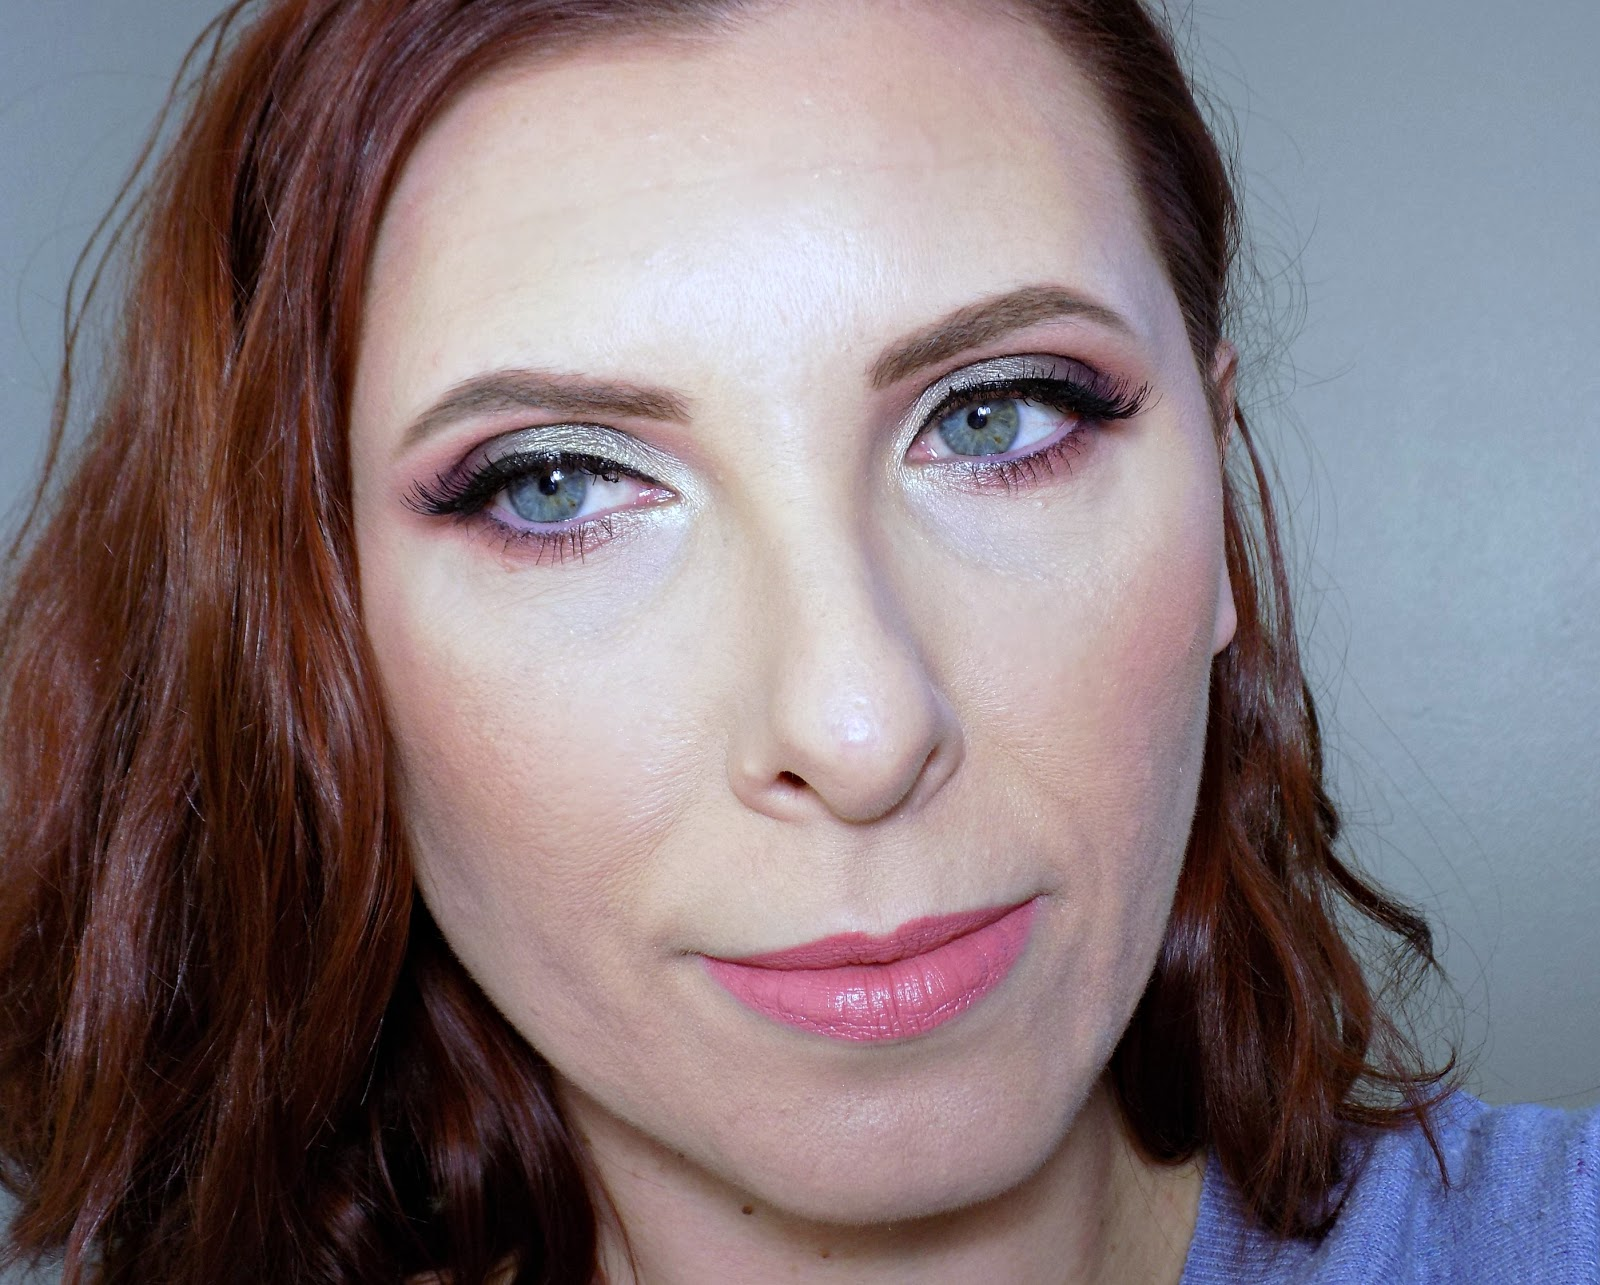 Makeup look using Too Faced Sweet Peach palette